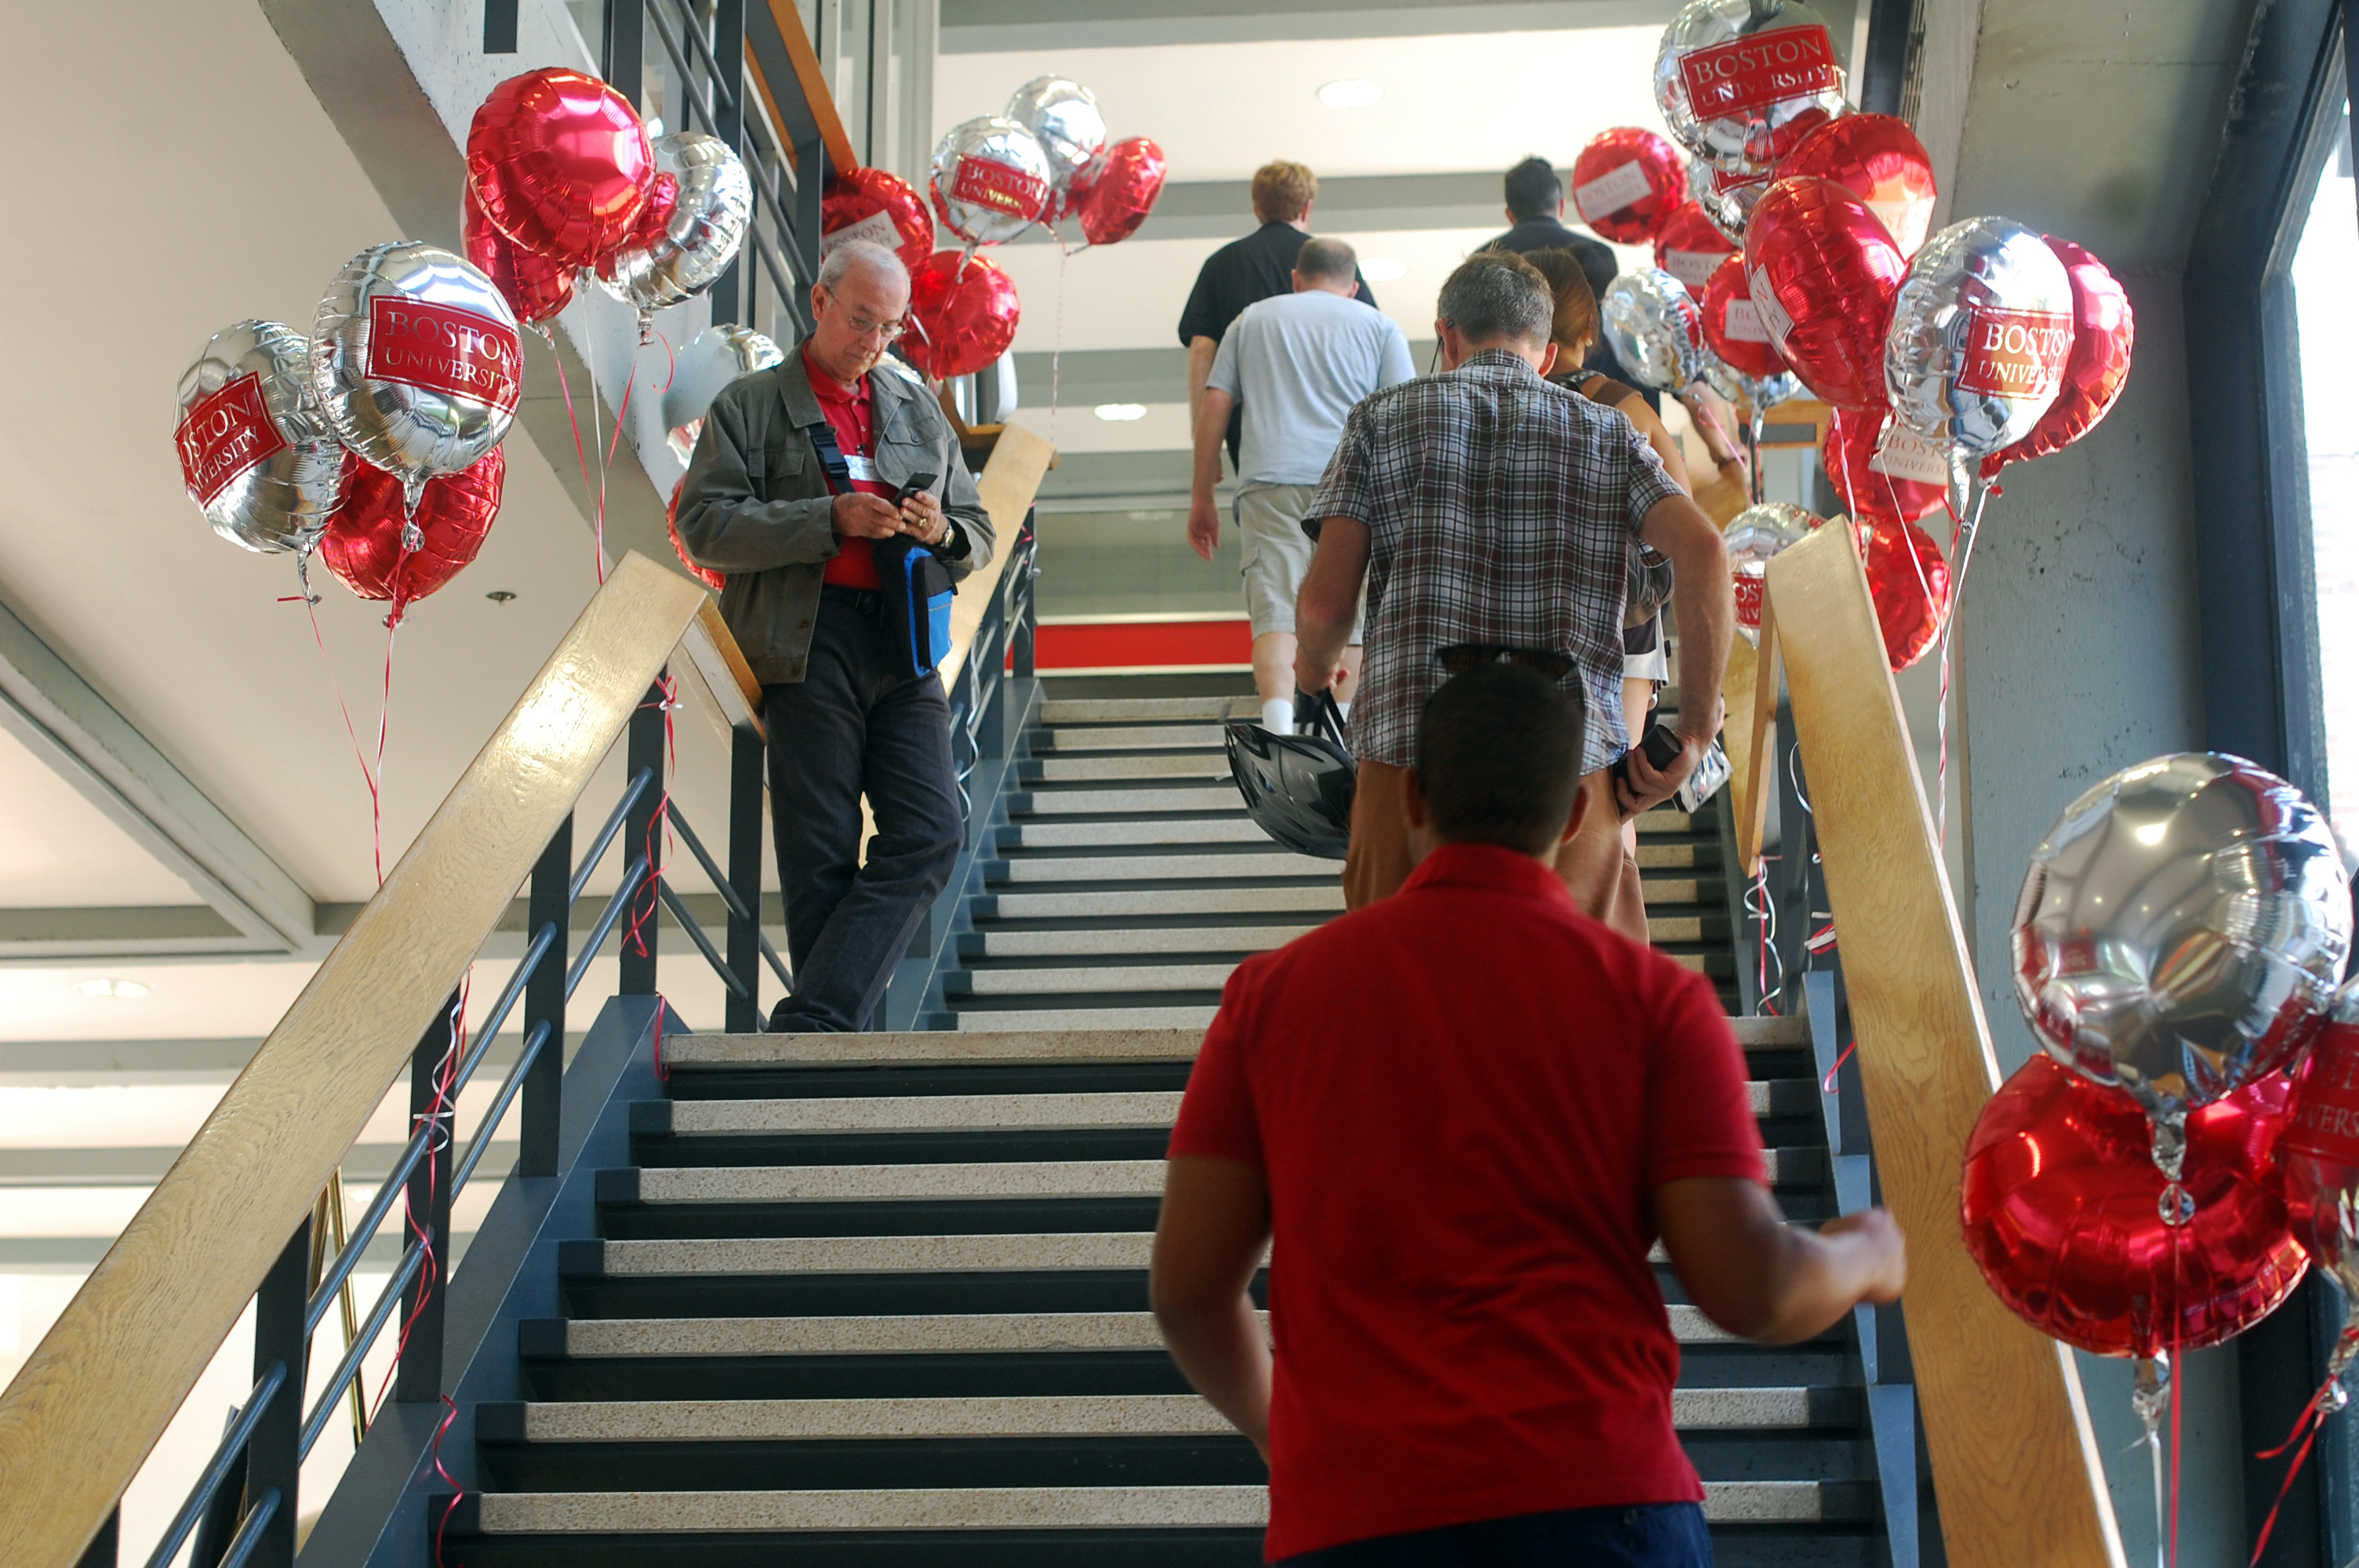 Parents and students file up the staircase to Metcalf Hall for the final and largest freshman orientation, which is composed mainly of international students